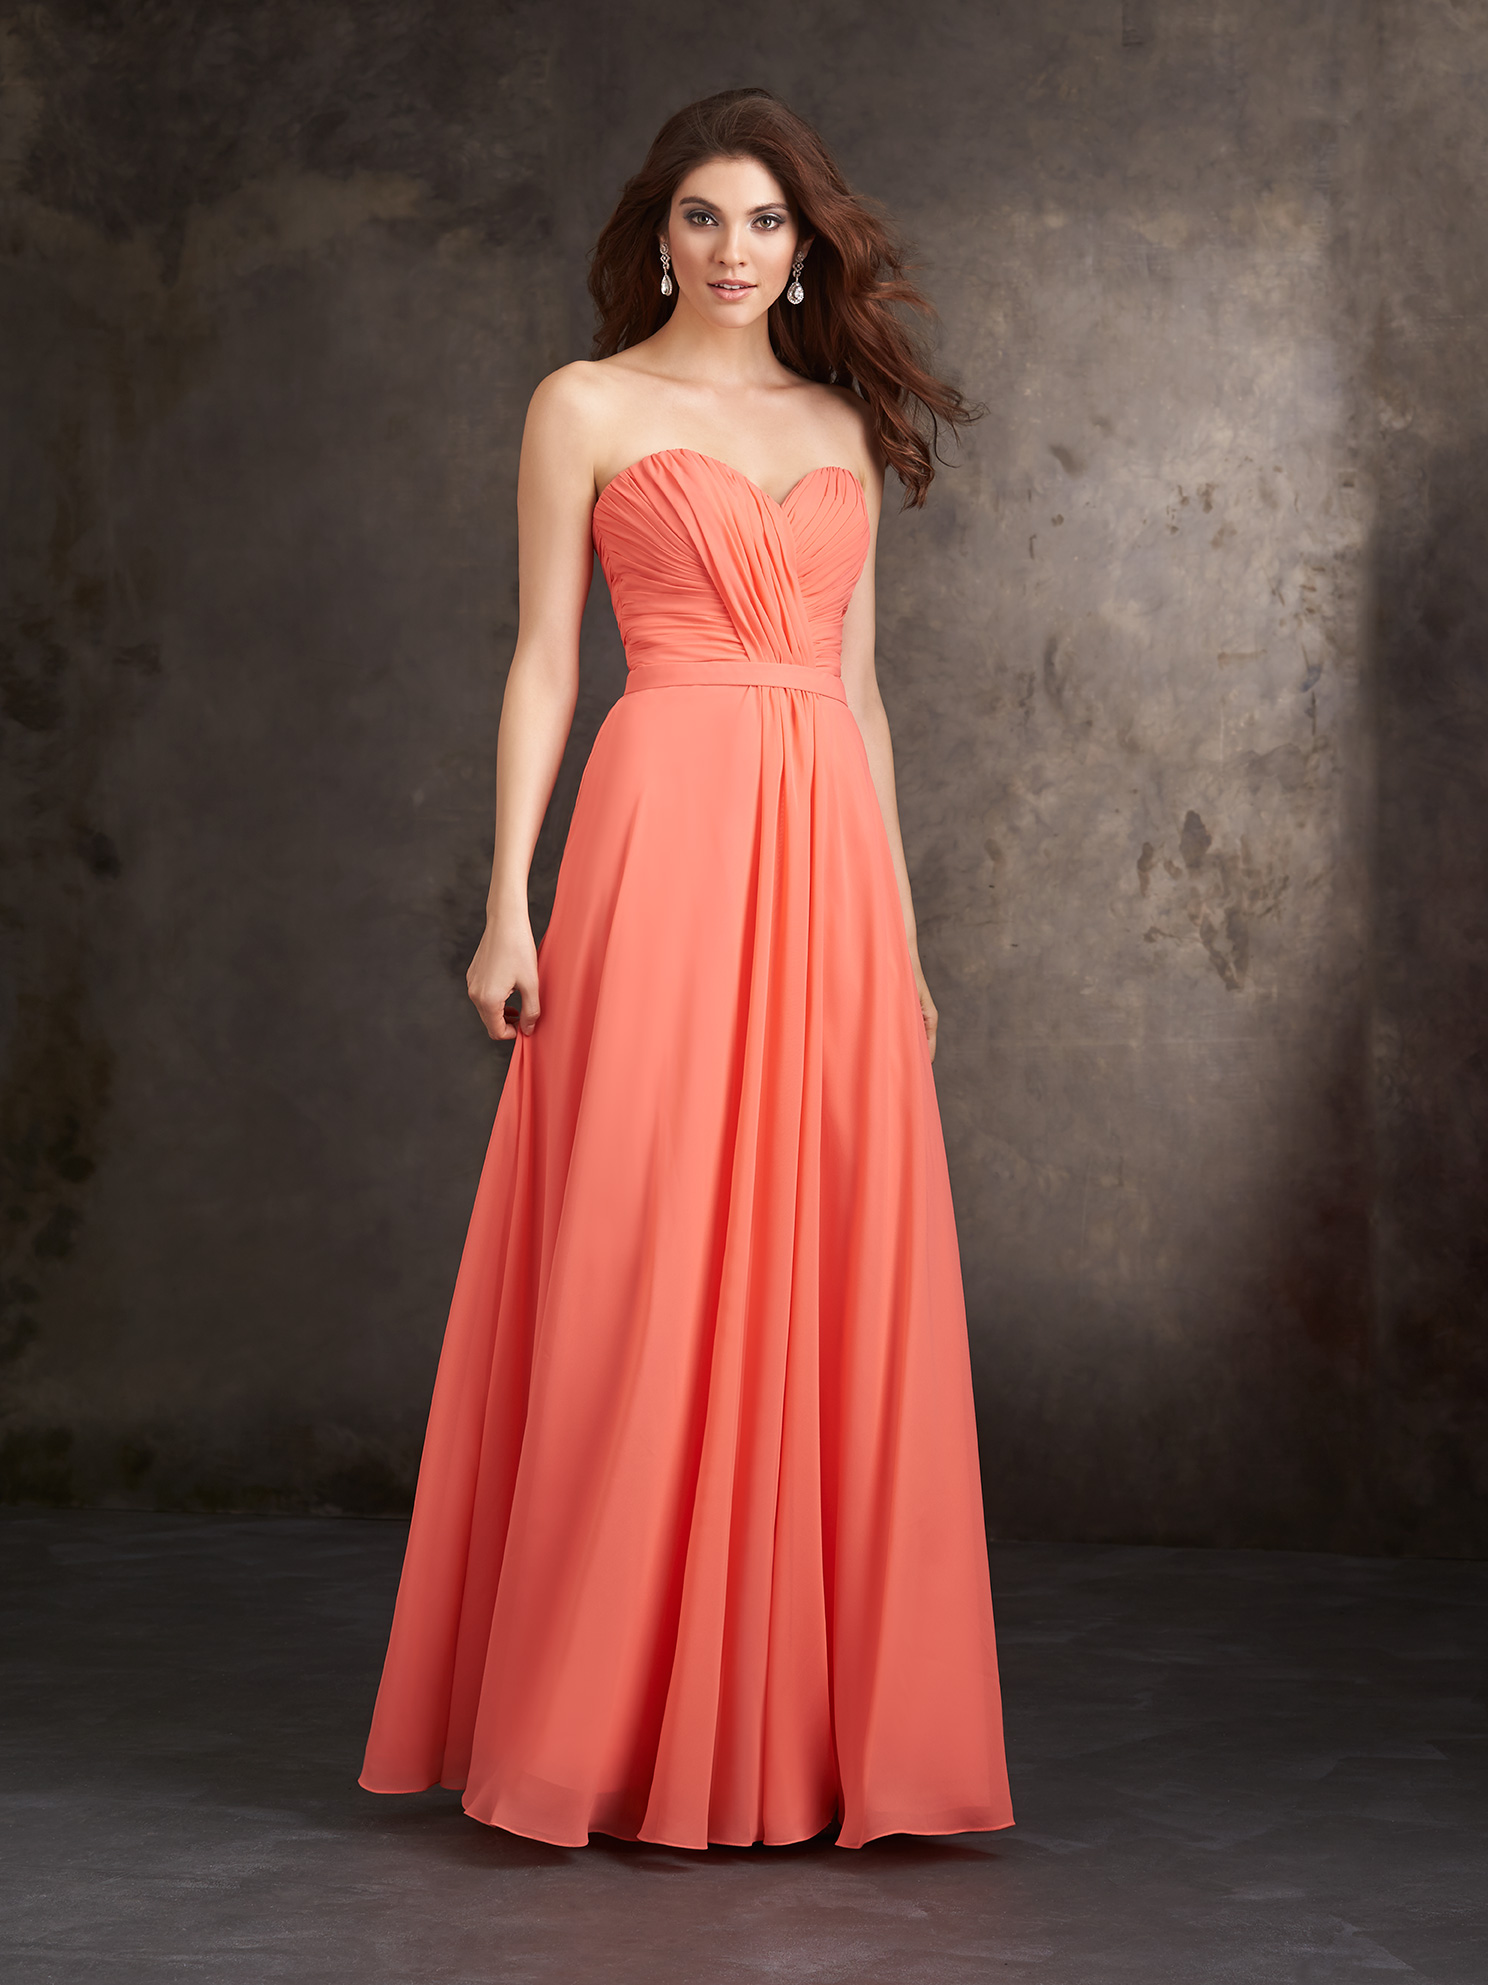 Simple Strapless Sweetheart Pleated Long Chiffon Bridesmaid Dress with Ribbon _2